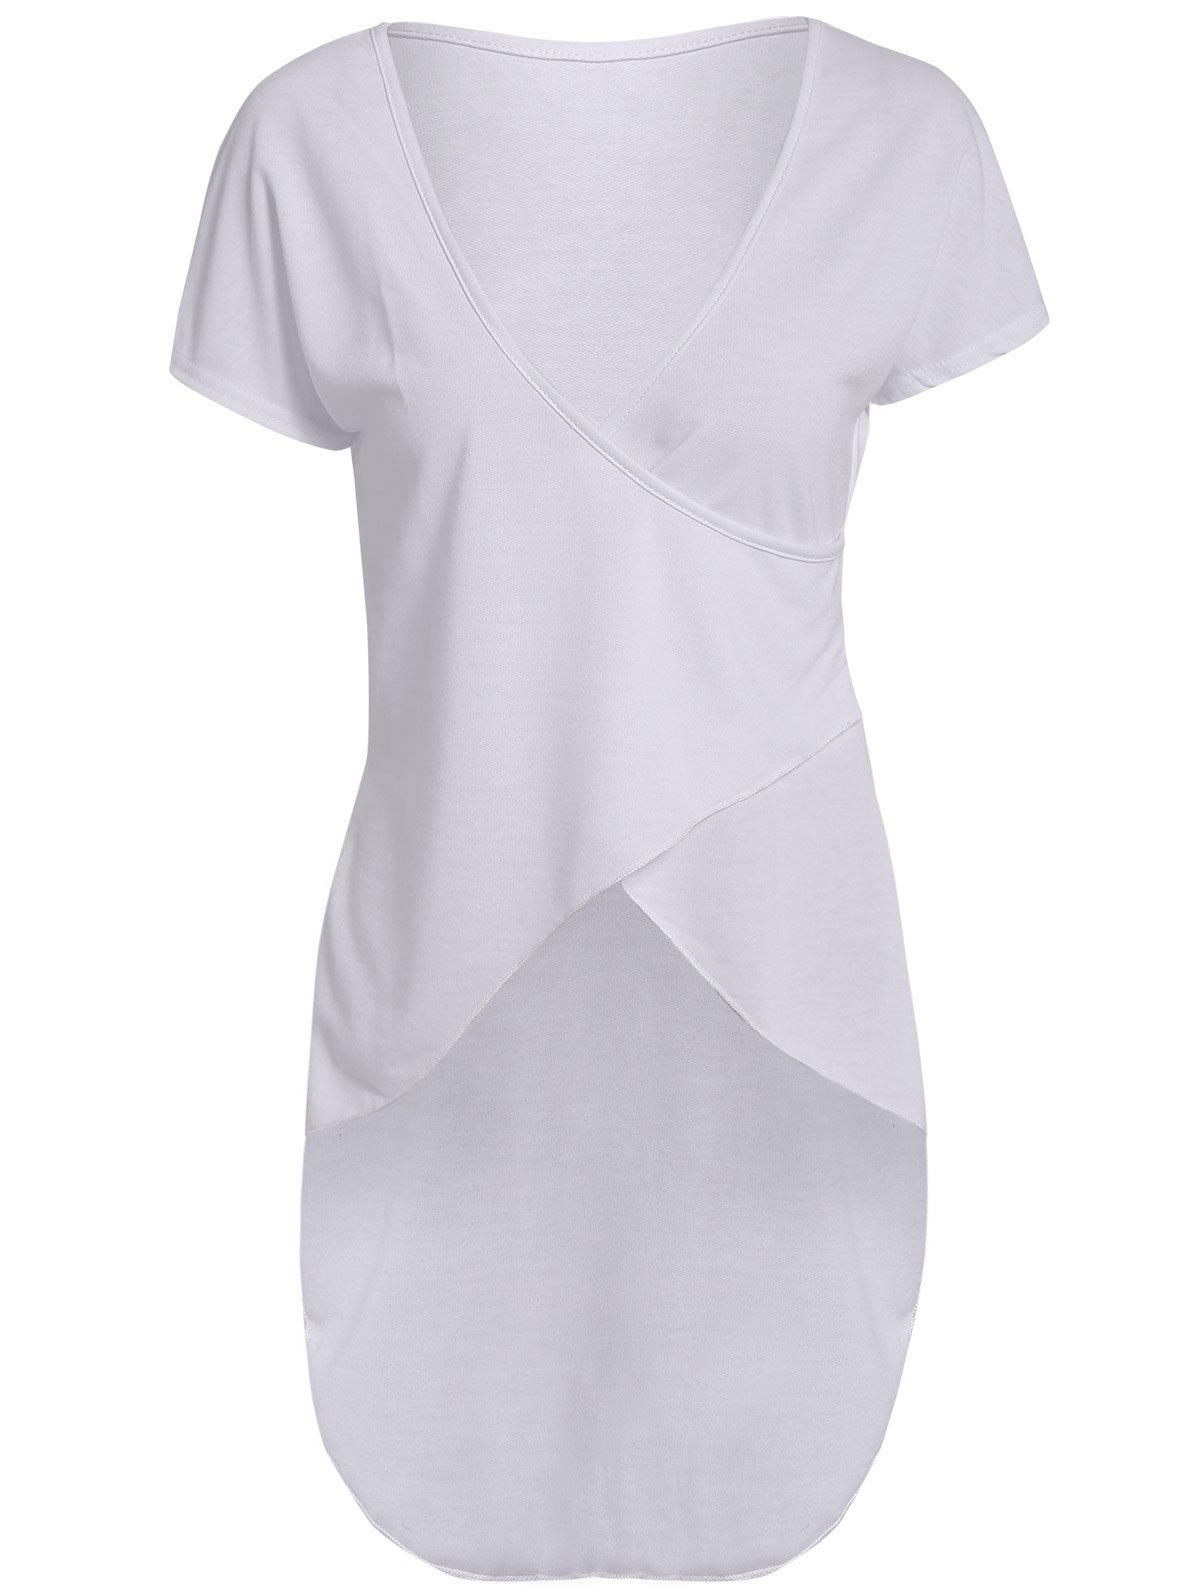 Trendy Plunging Neck Slit Asymmetric Pullover White T-Shirt For Women - WHITE M